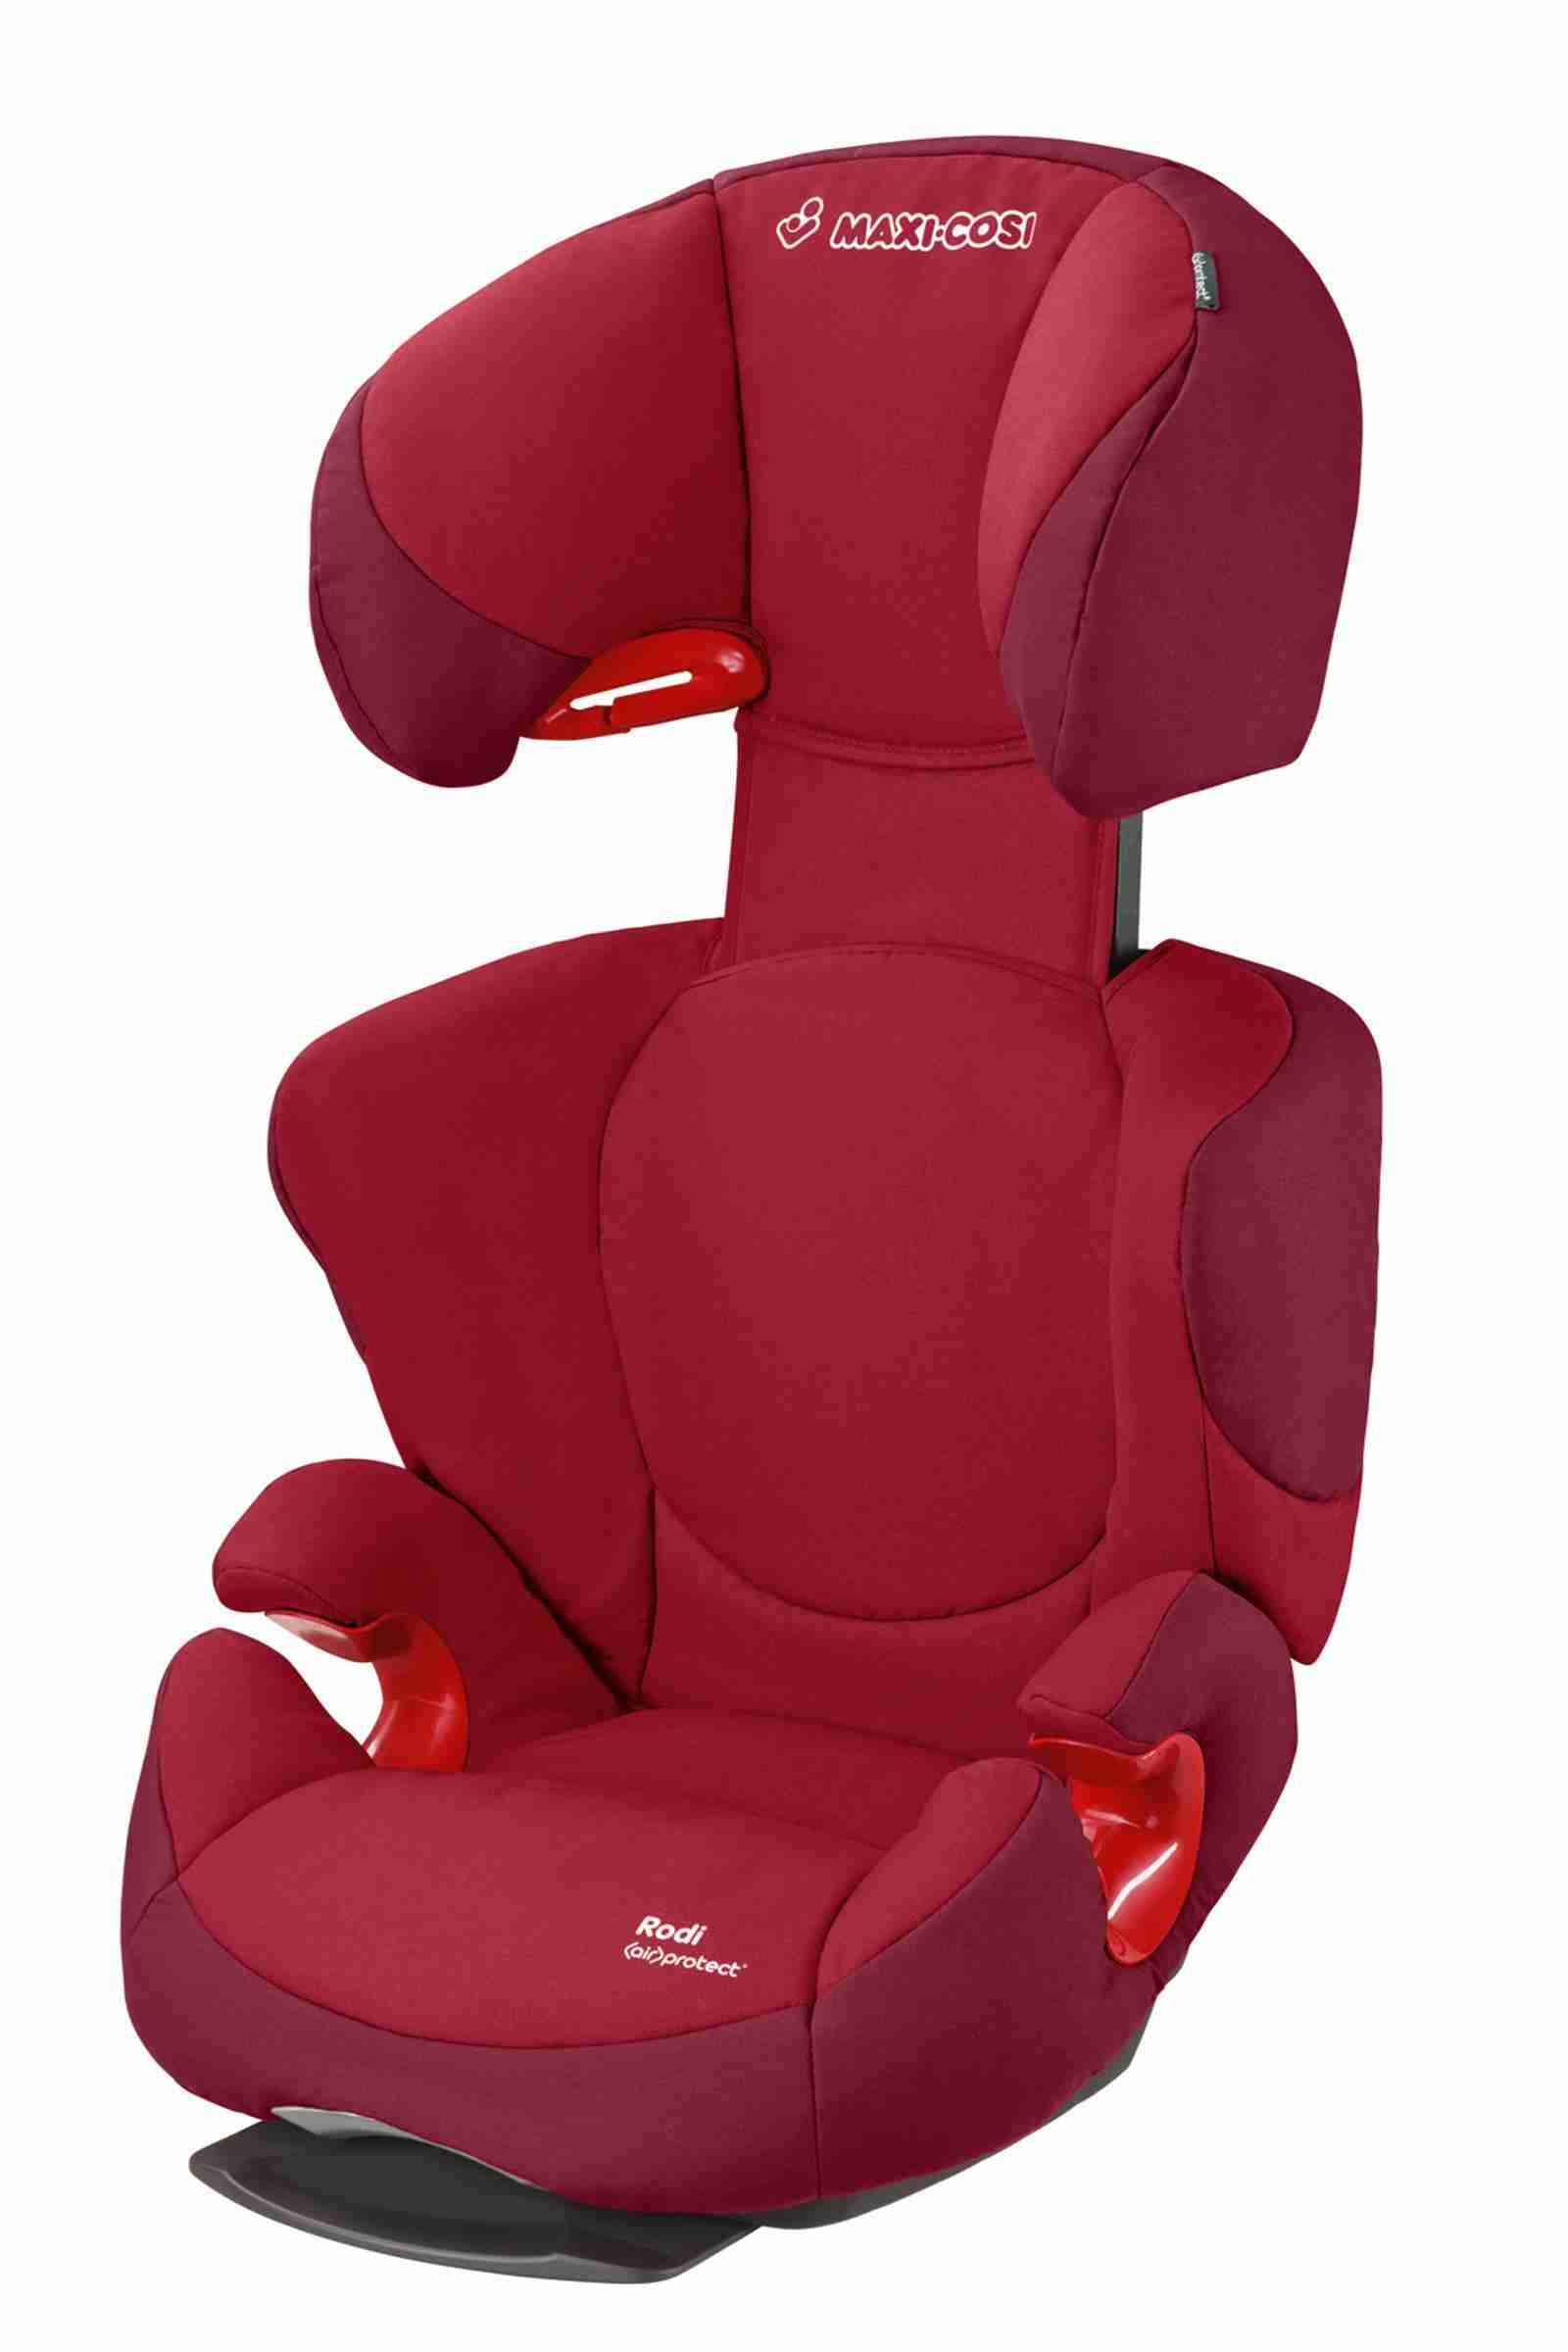 maxi cosi rodi airprotect robin red beste keuze autostoel. Black Bedroom Furniture Sets. Home Design Ideas